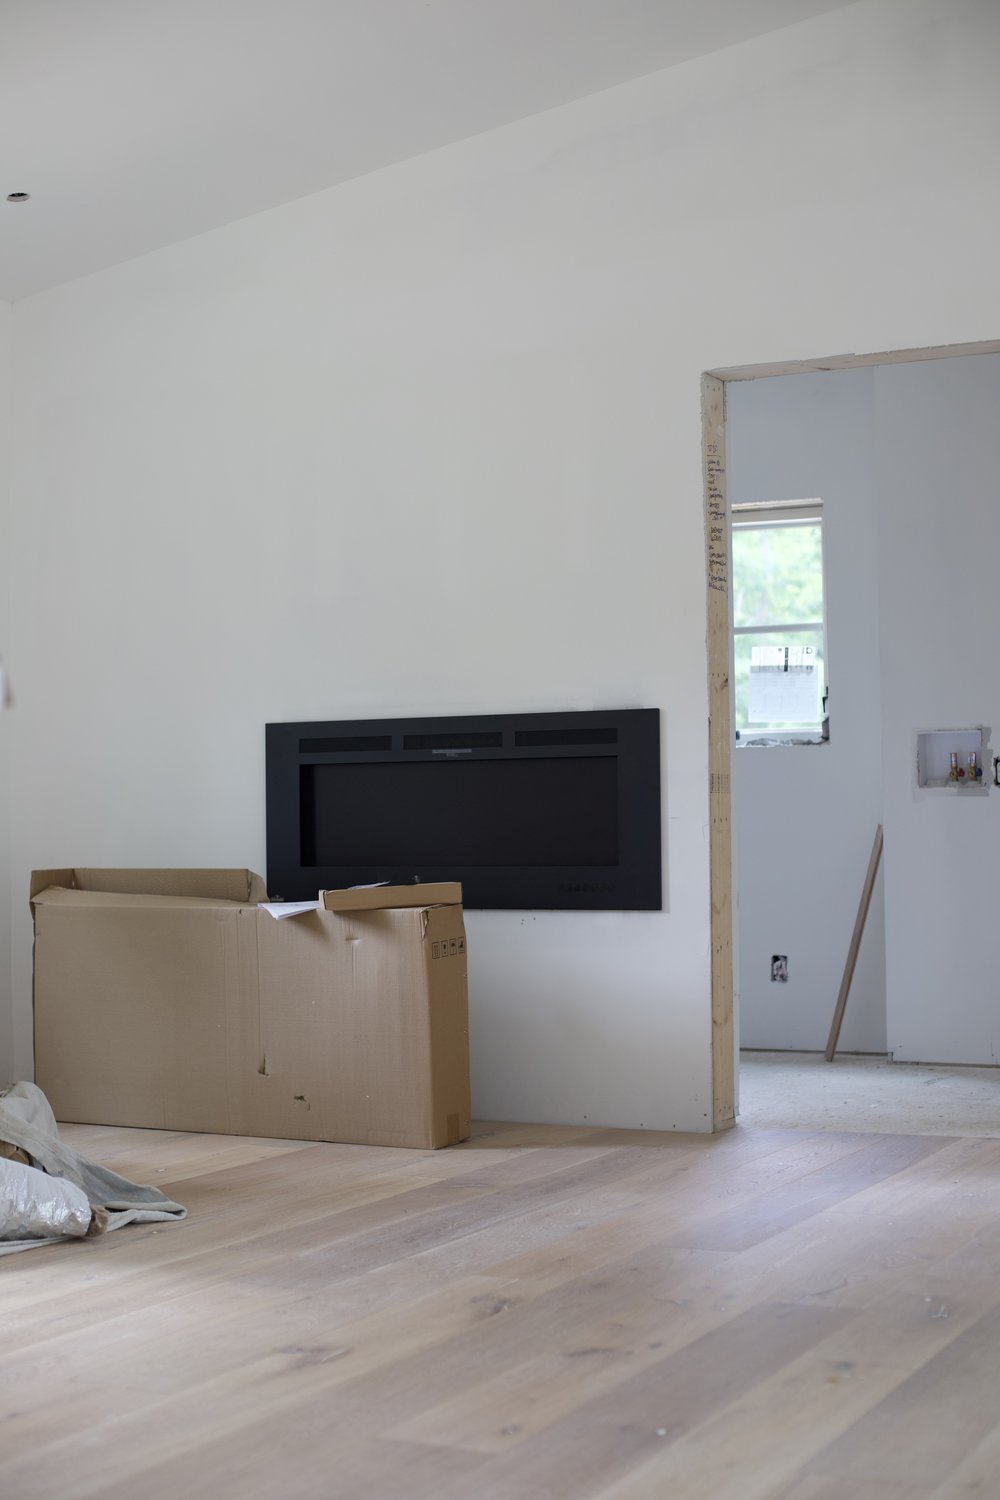 fire place &living room, with door way to laundry room.